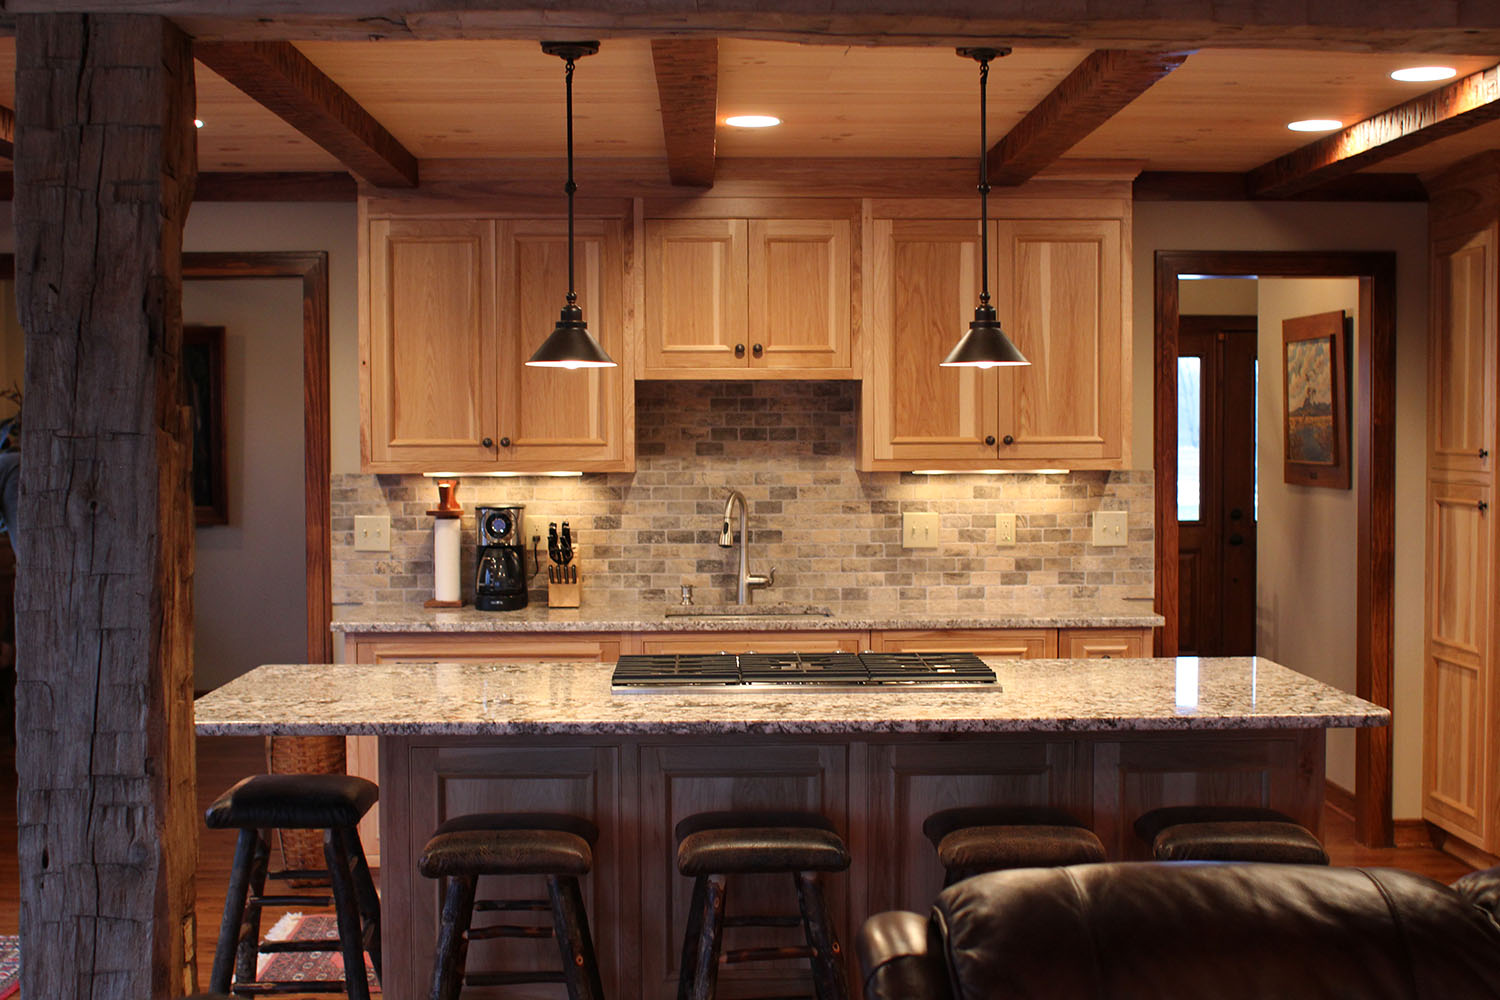 custom cabinetry amish kitchen cabinets Kitchen Remodel